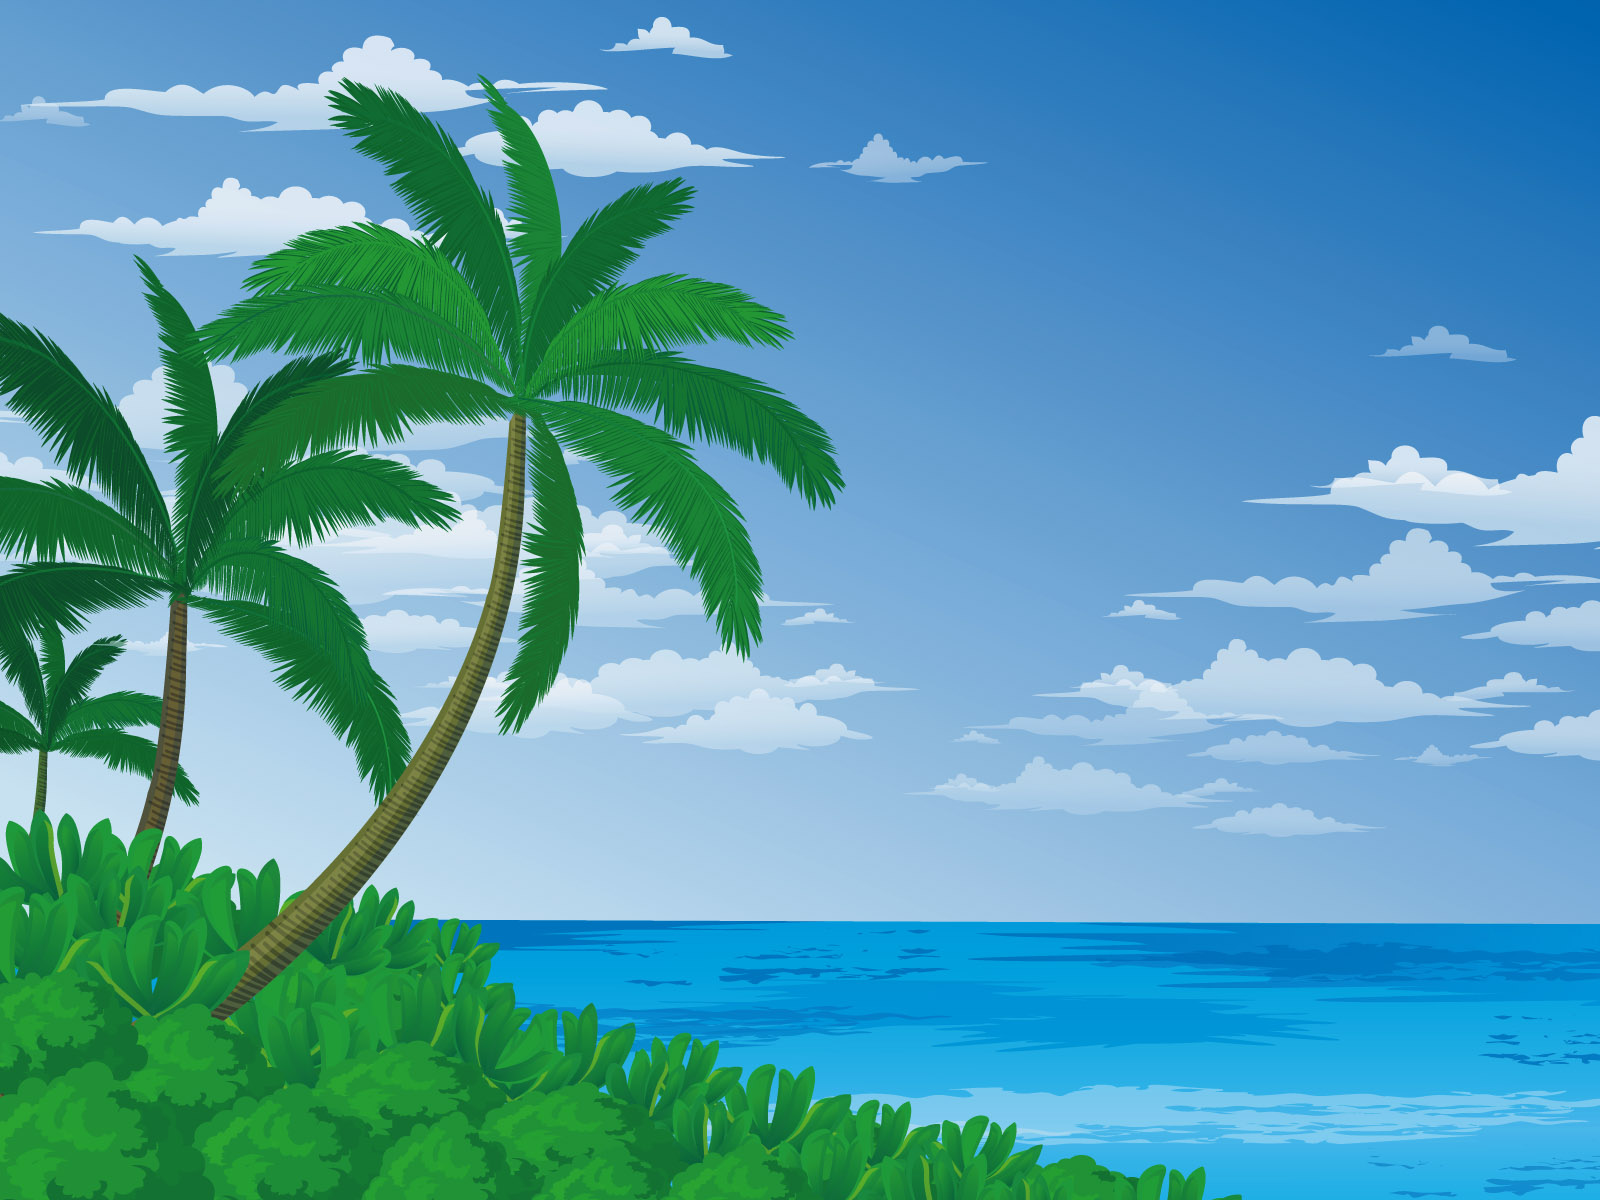 Cartoon landscape wallpaper 21320